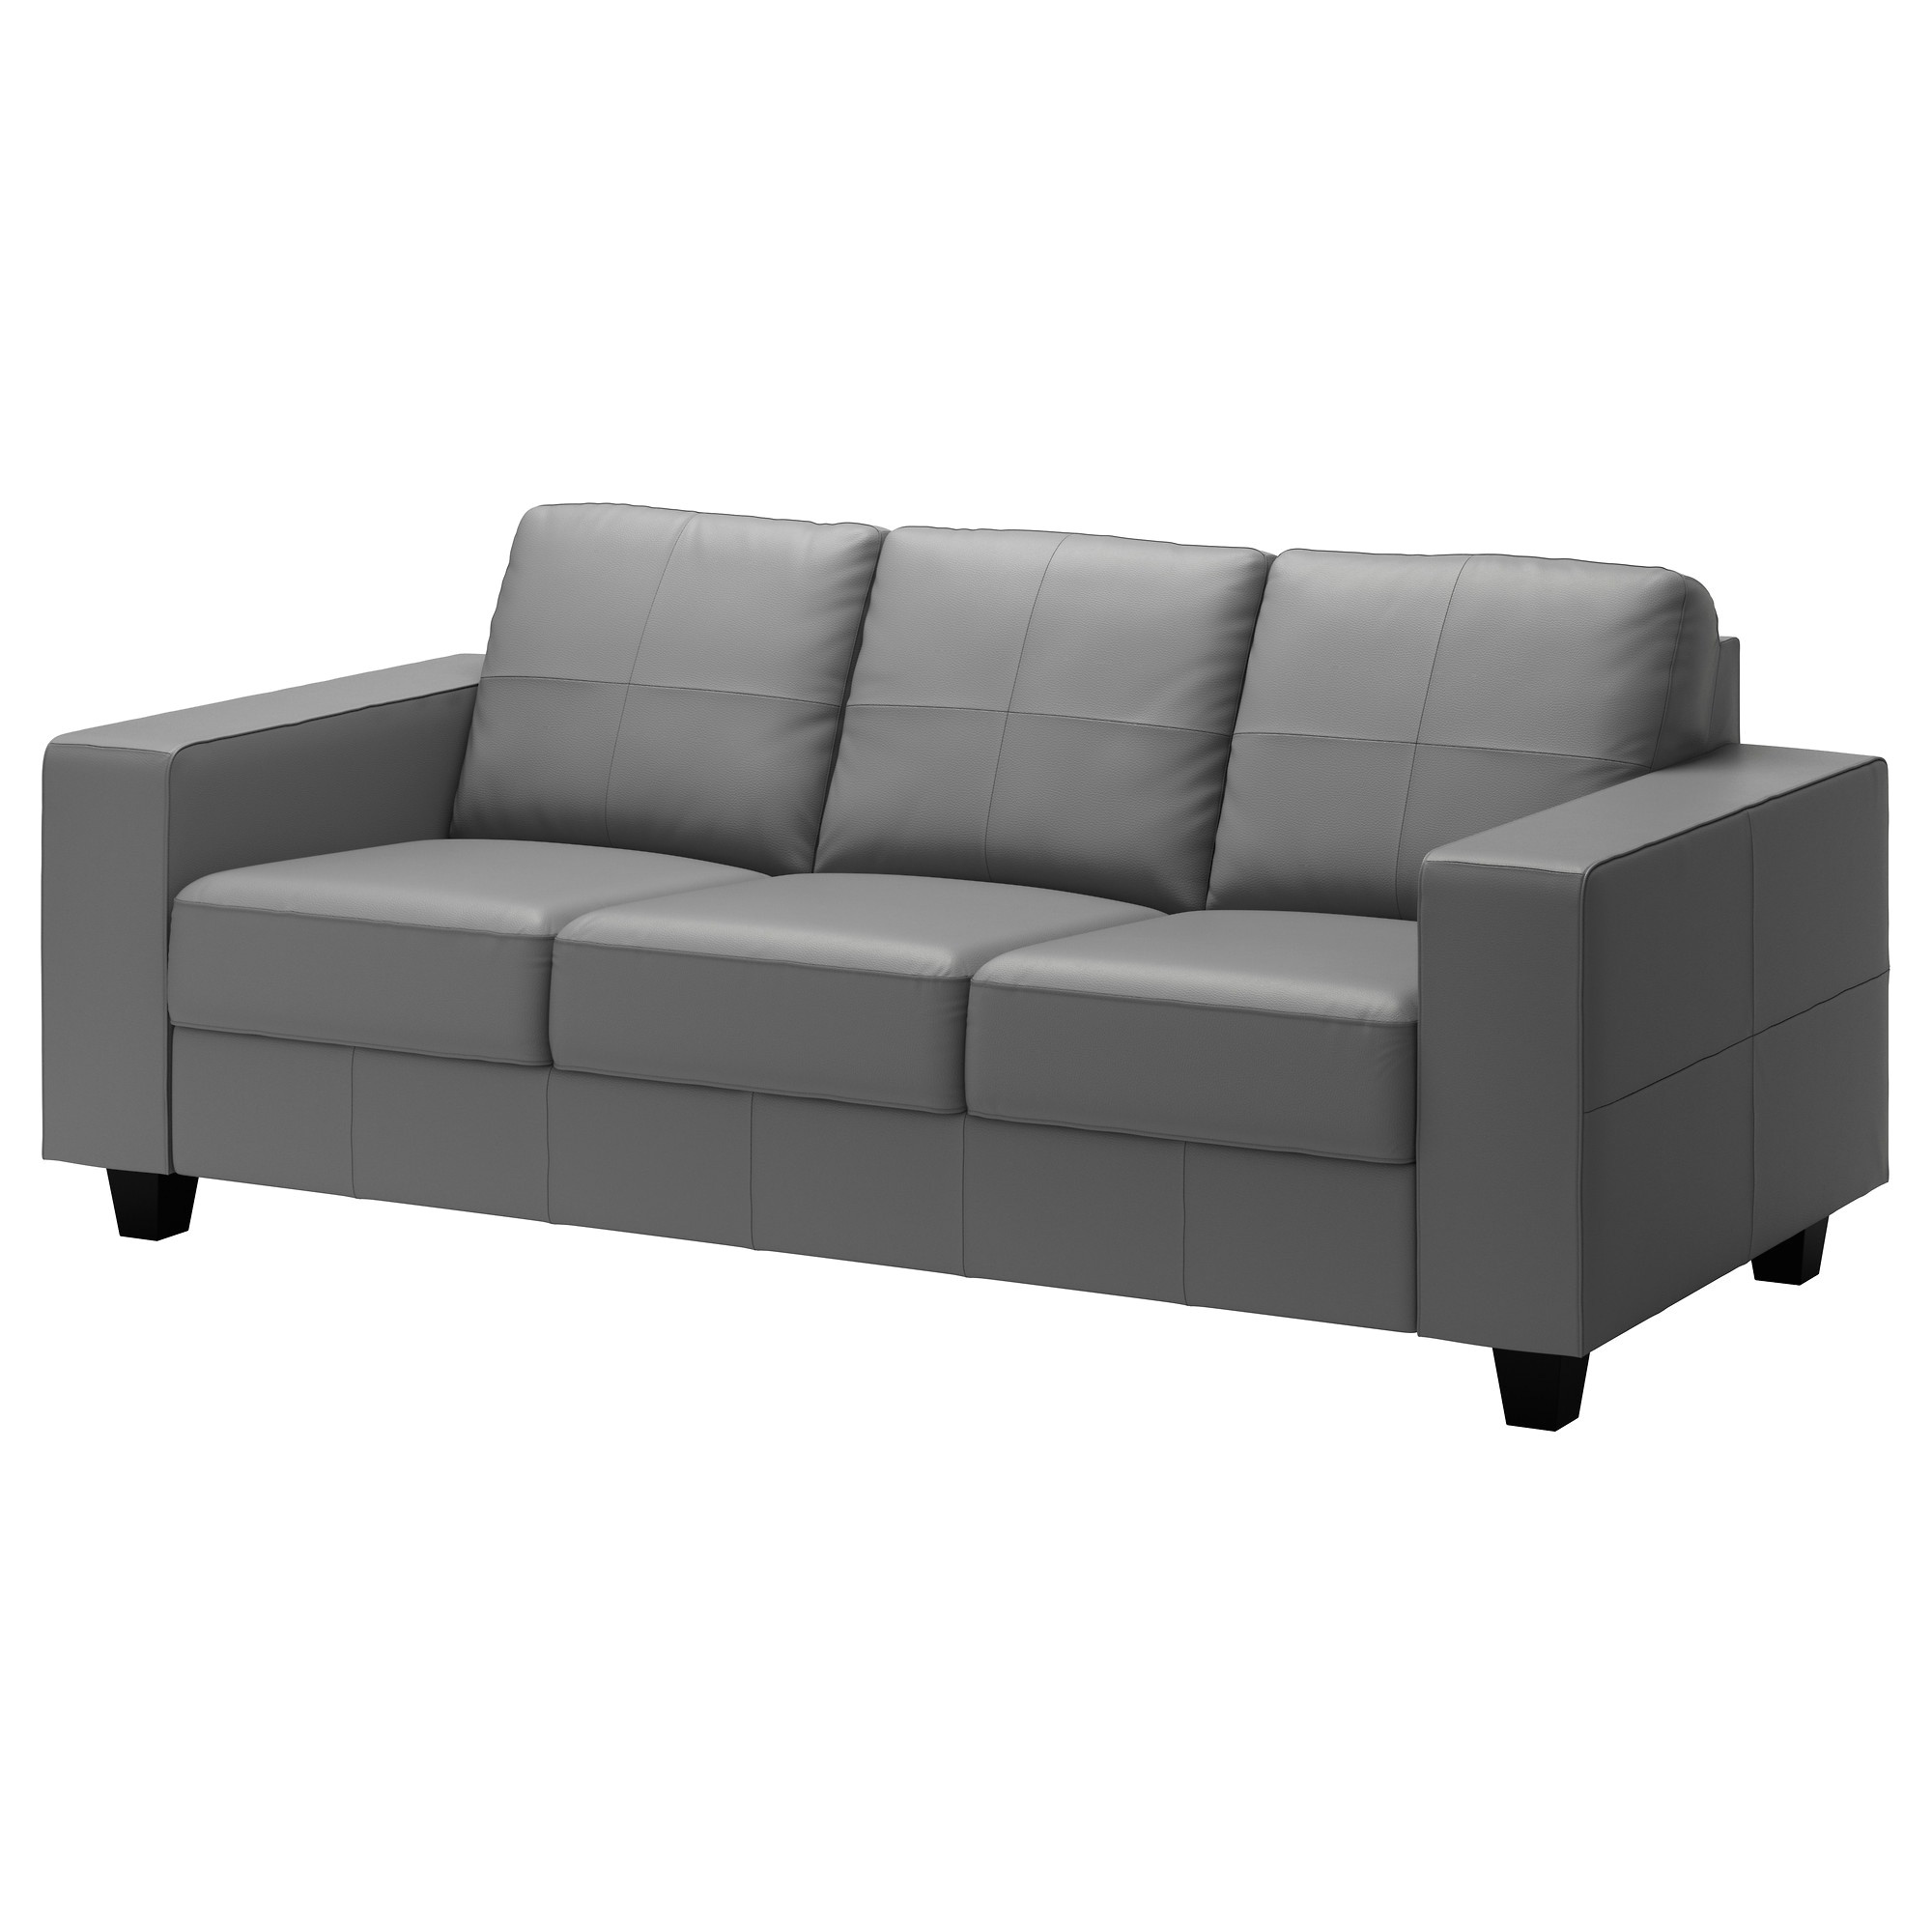 Ikea Friheten Sleeper sofa Review Futon sofa Ikea Einzigartig Furniture Friheten sofa Bed Review Ikea